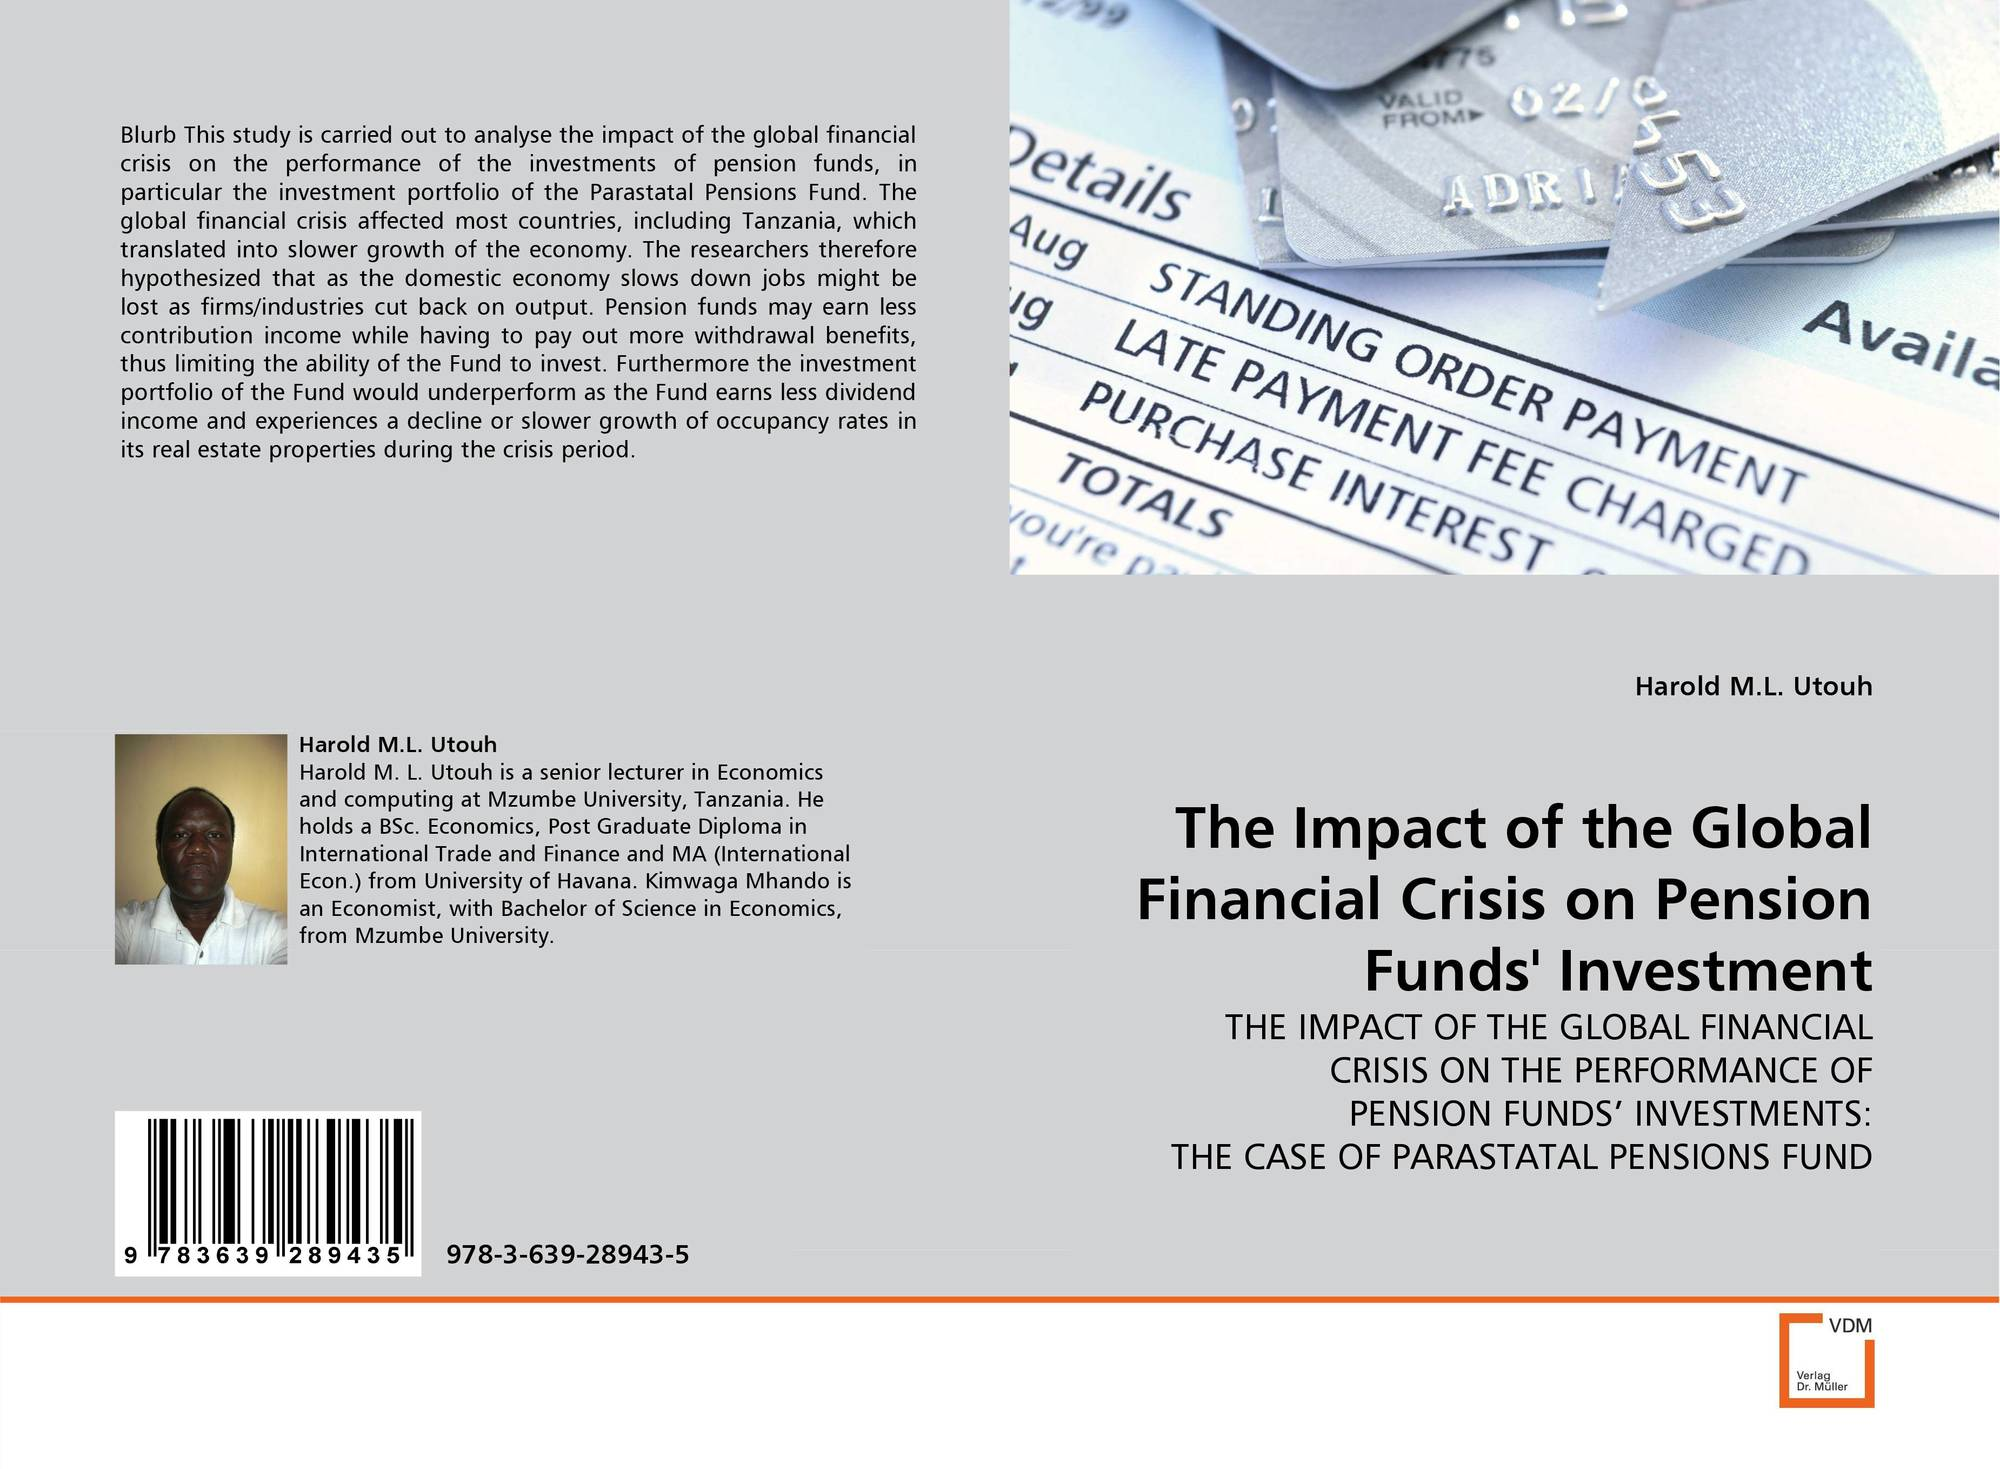 an analysis of the impacts of economic crisis in indonesia The country's resilience over the course of the global financial crisis illustrated the merits of its immense population and economic self reliance bucking the trend of most other g20 economies, in 2009 the country recorded 45% gdp growth and achieved higher than expected growth of 61% in 2010.